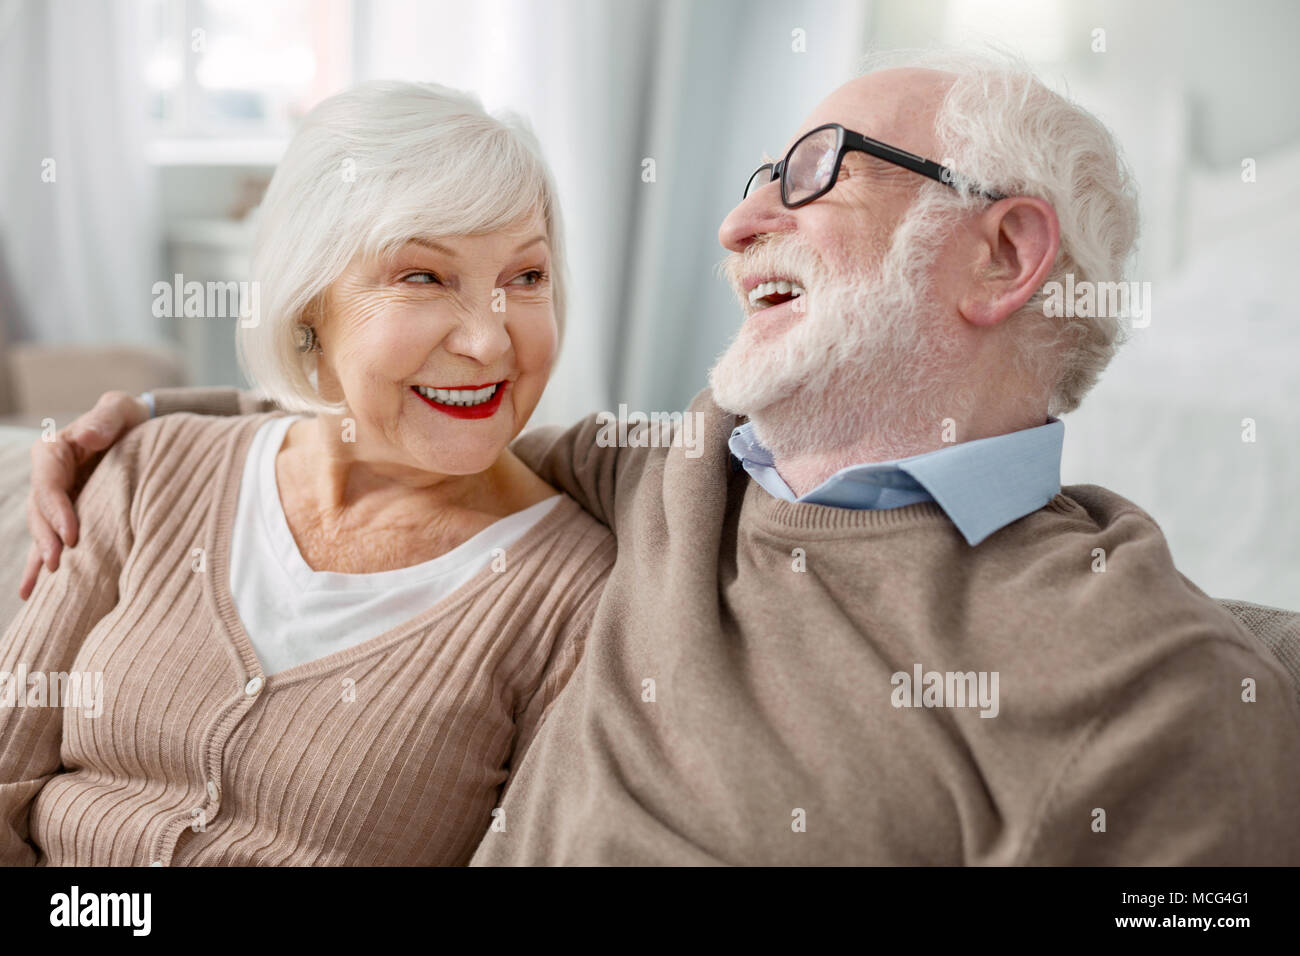 Cheerful elderly man hugging his wife - Stock Image